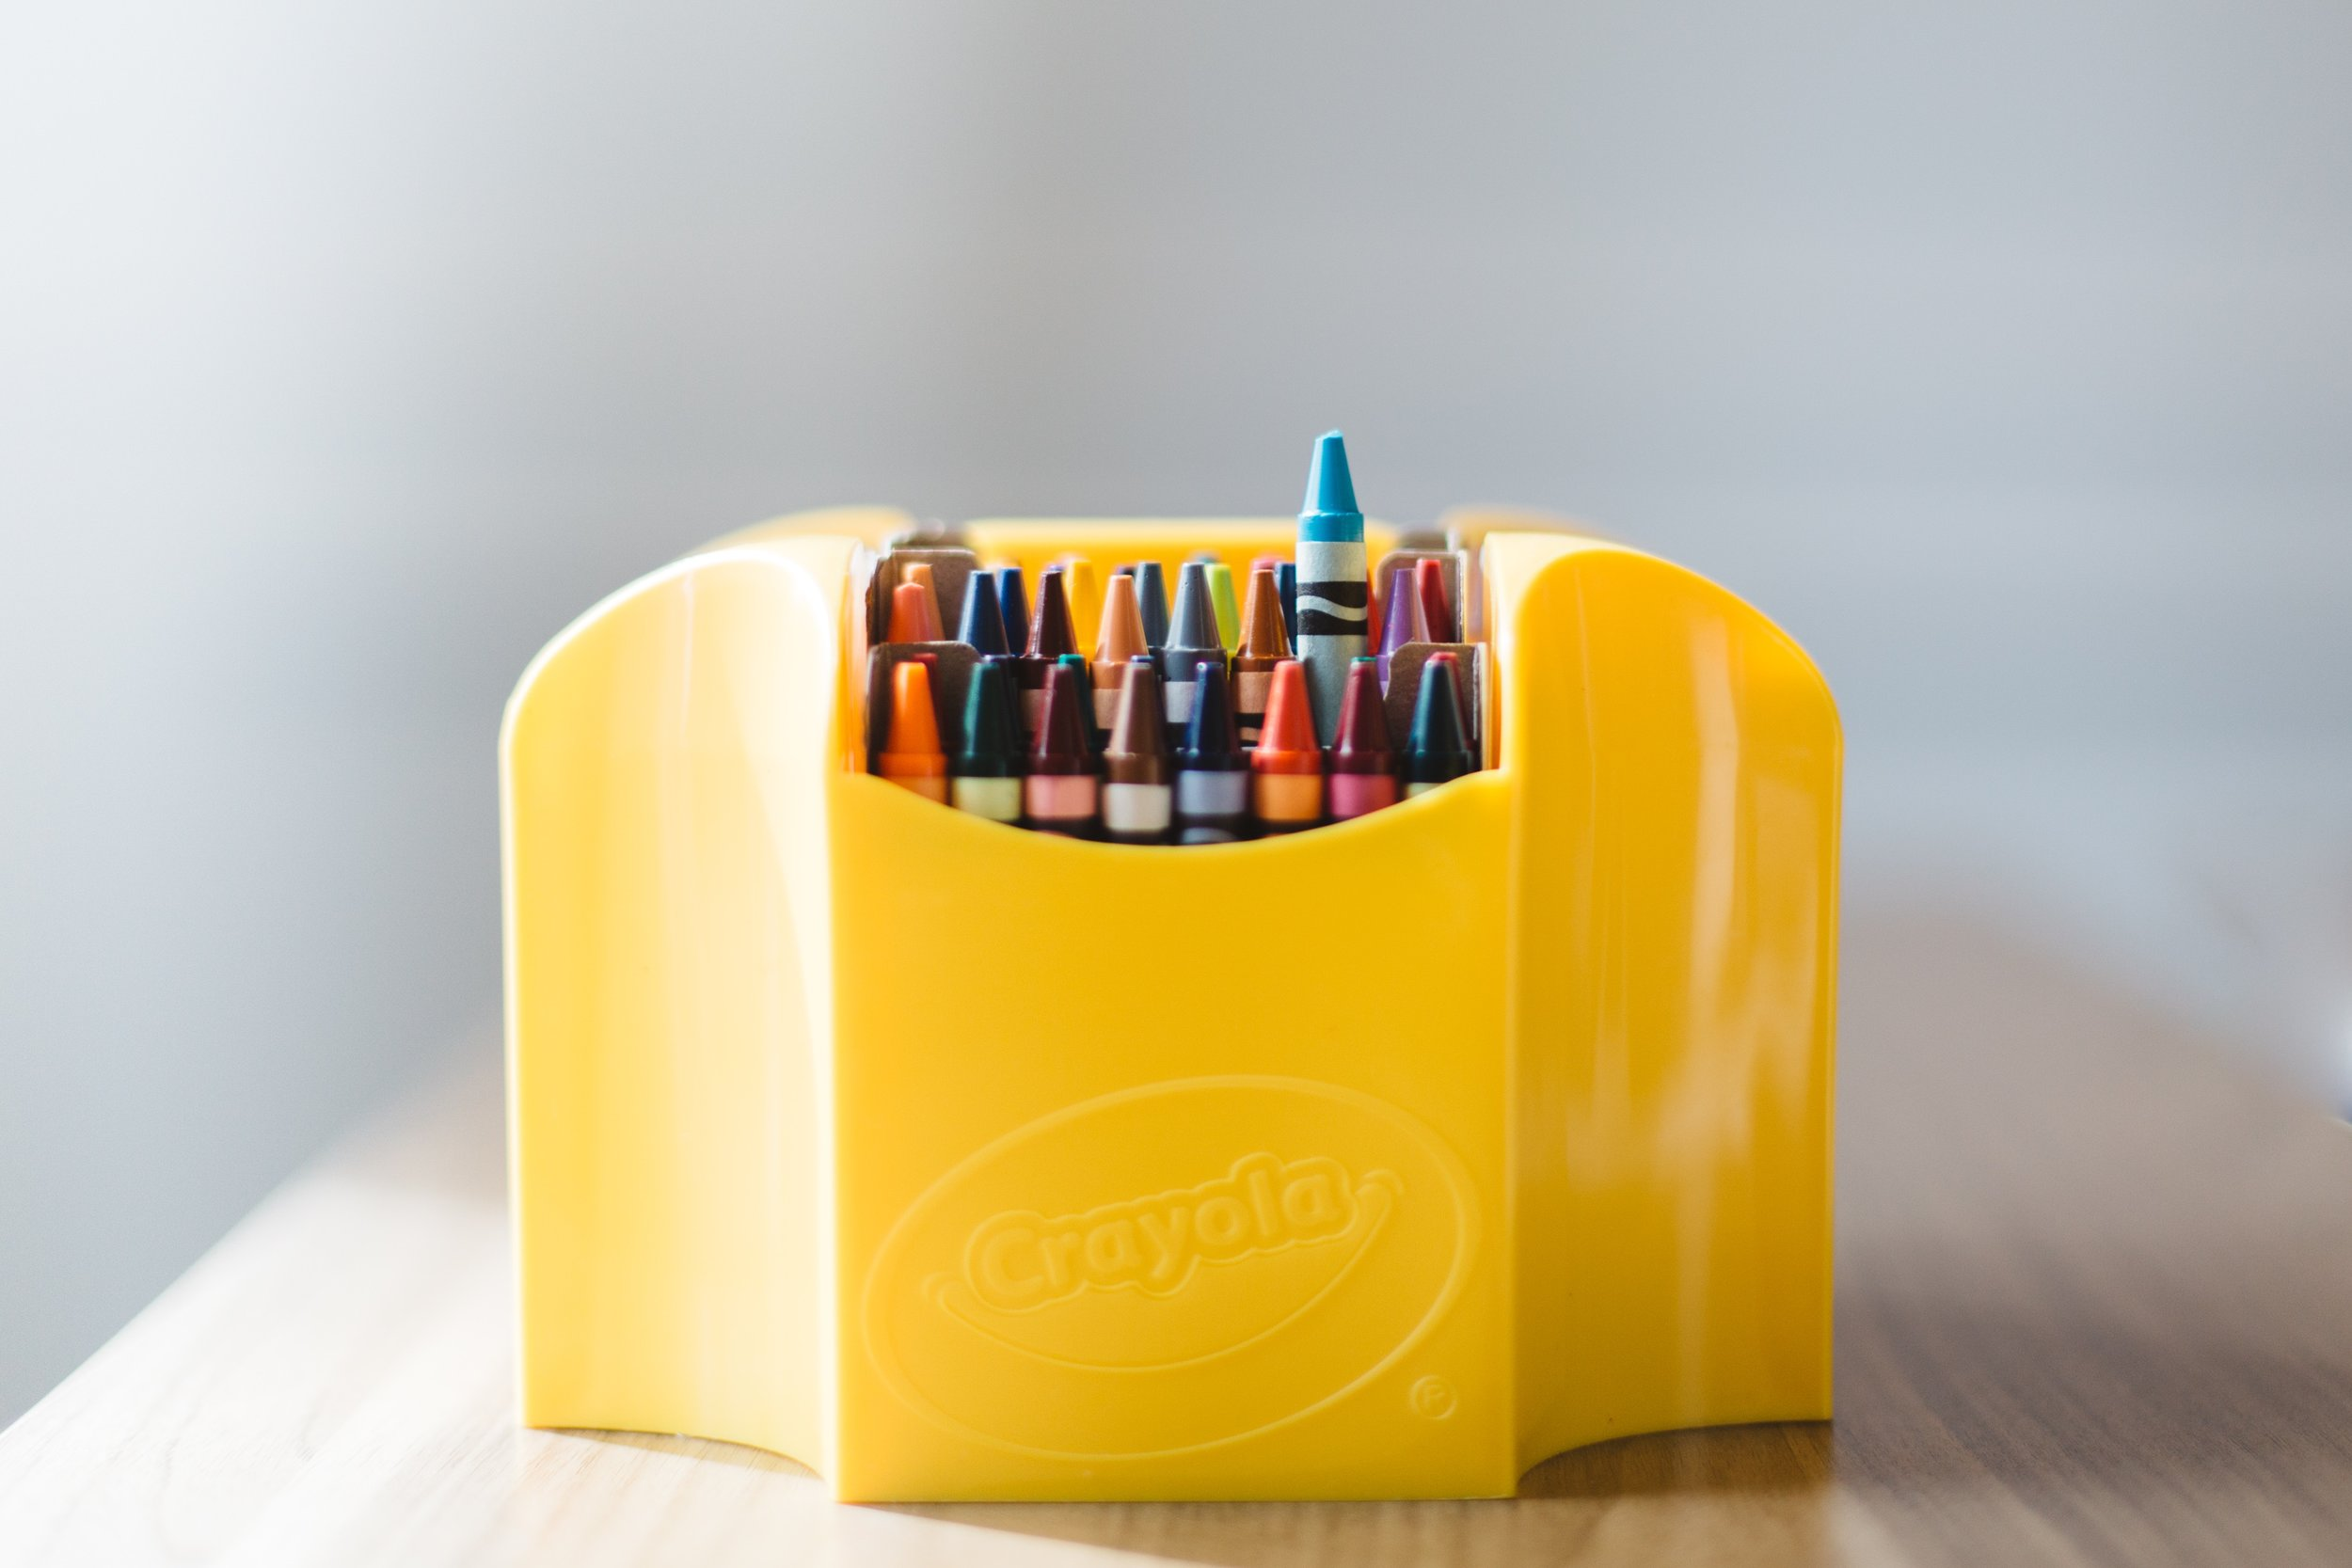 crayons-yellow-box-table.jpg